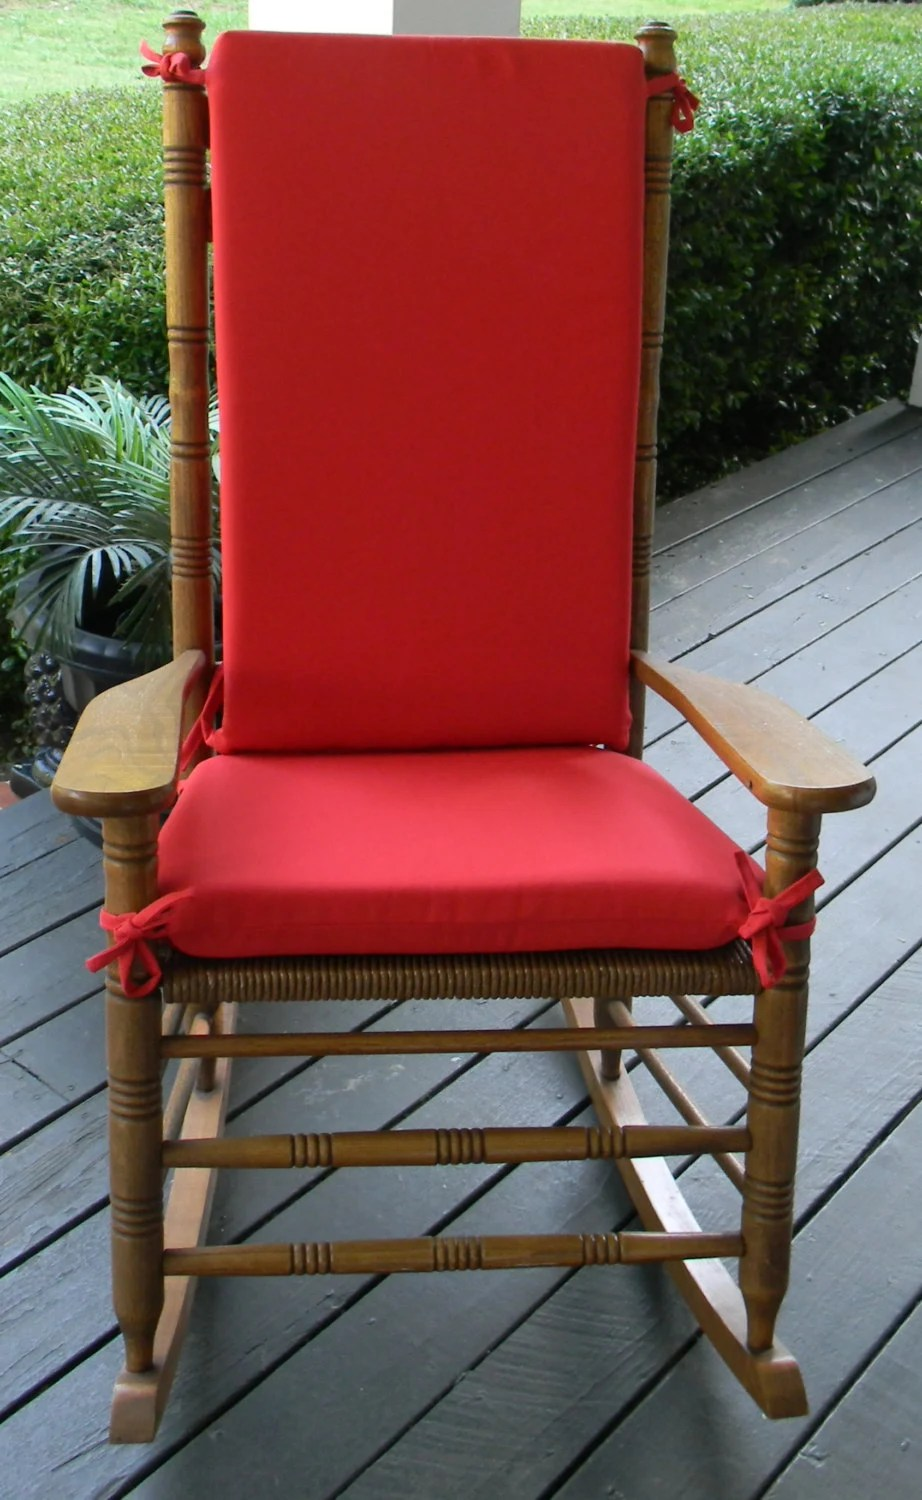 Indoor  Outdoor Solid Red Rocking Chair 2 PC Foam Cushion Set